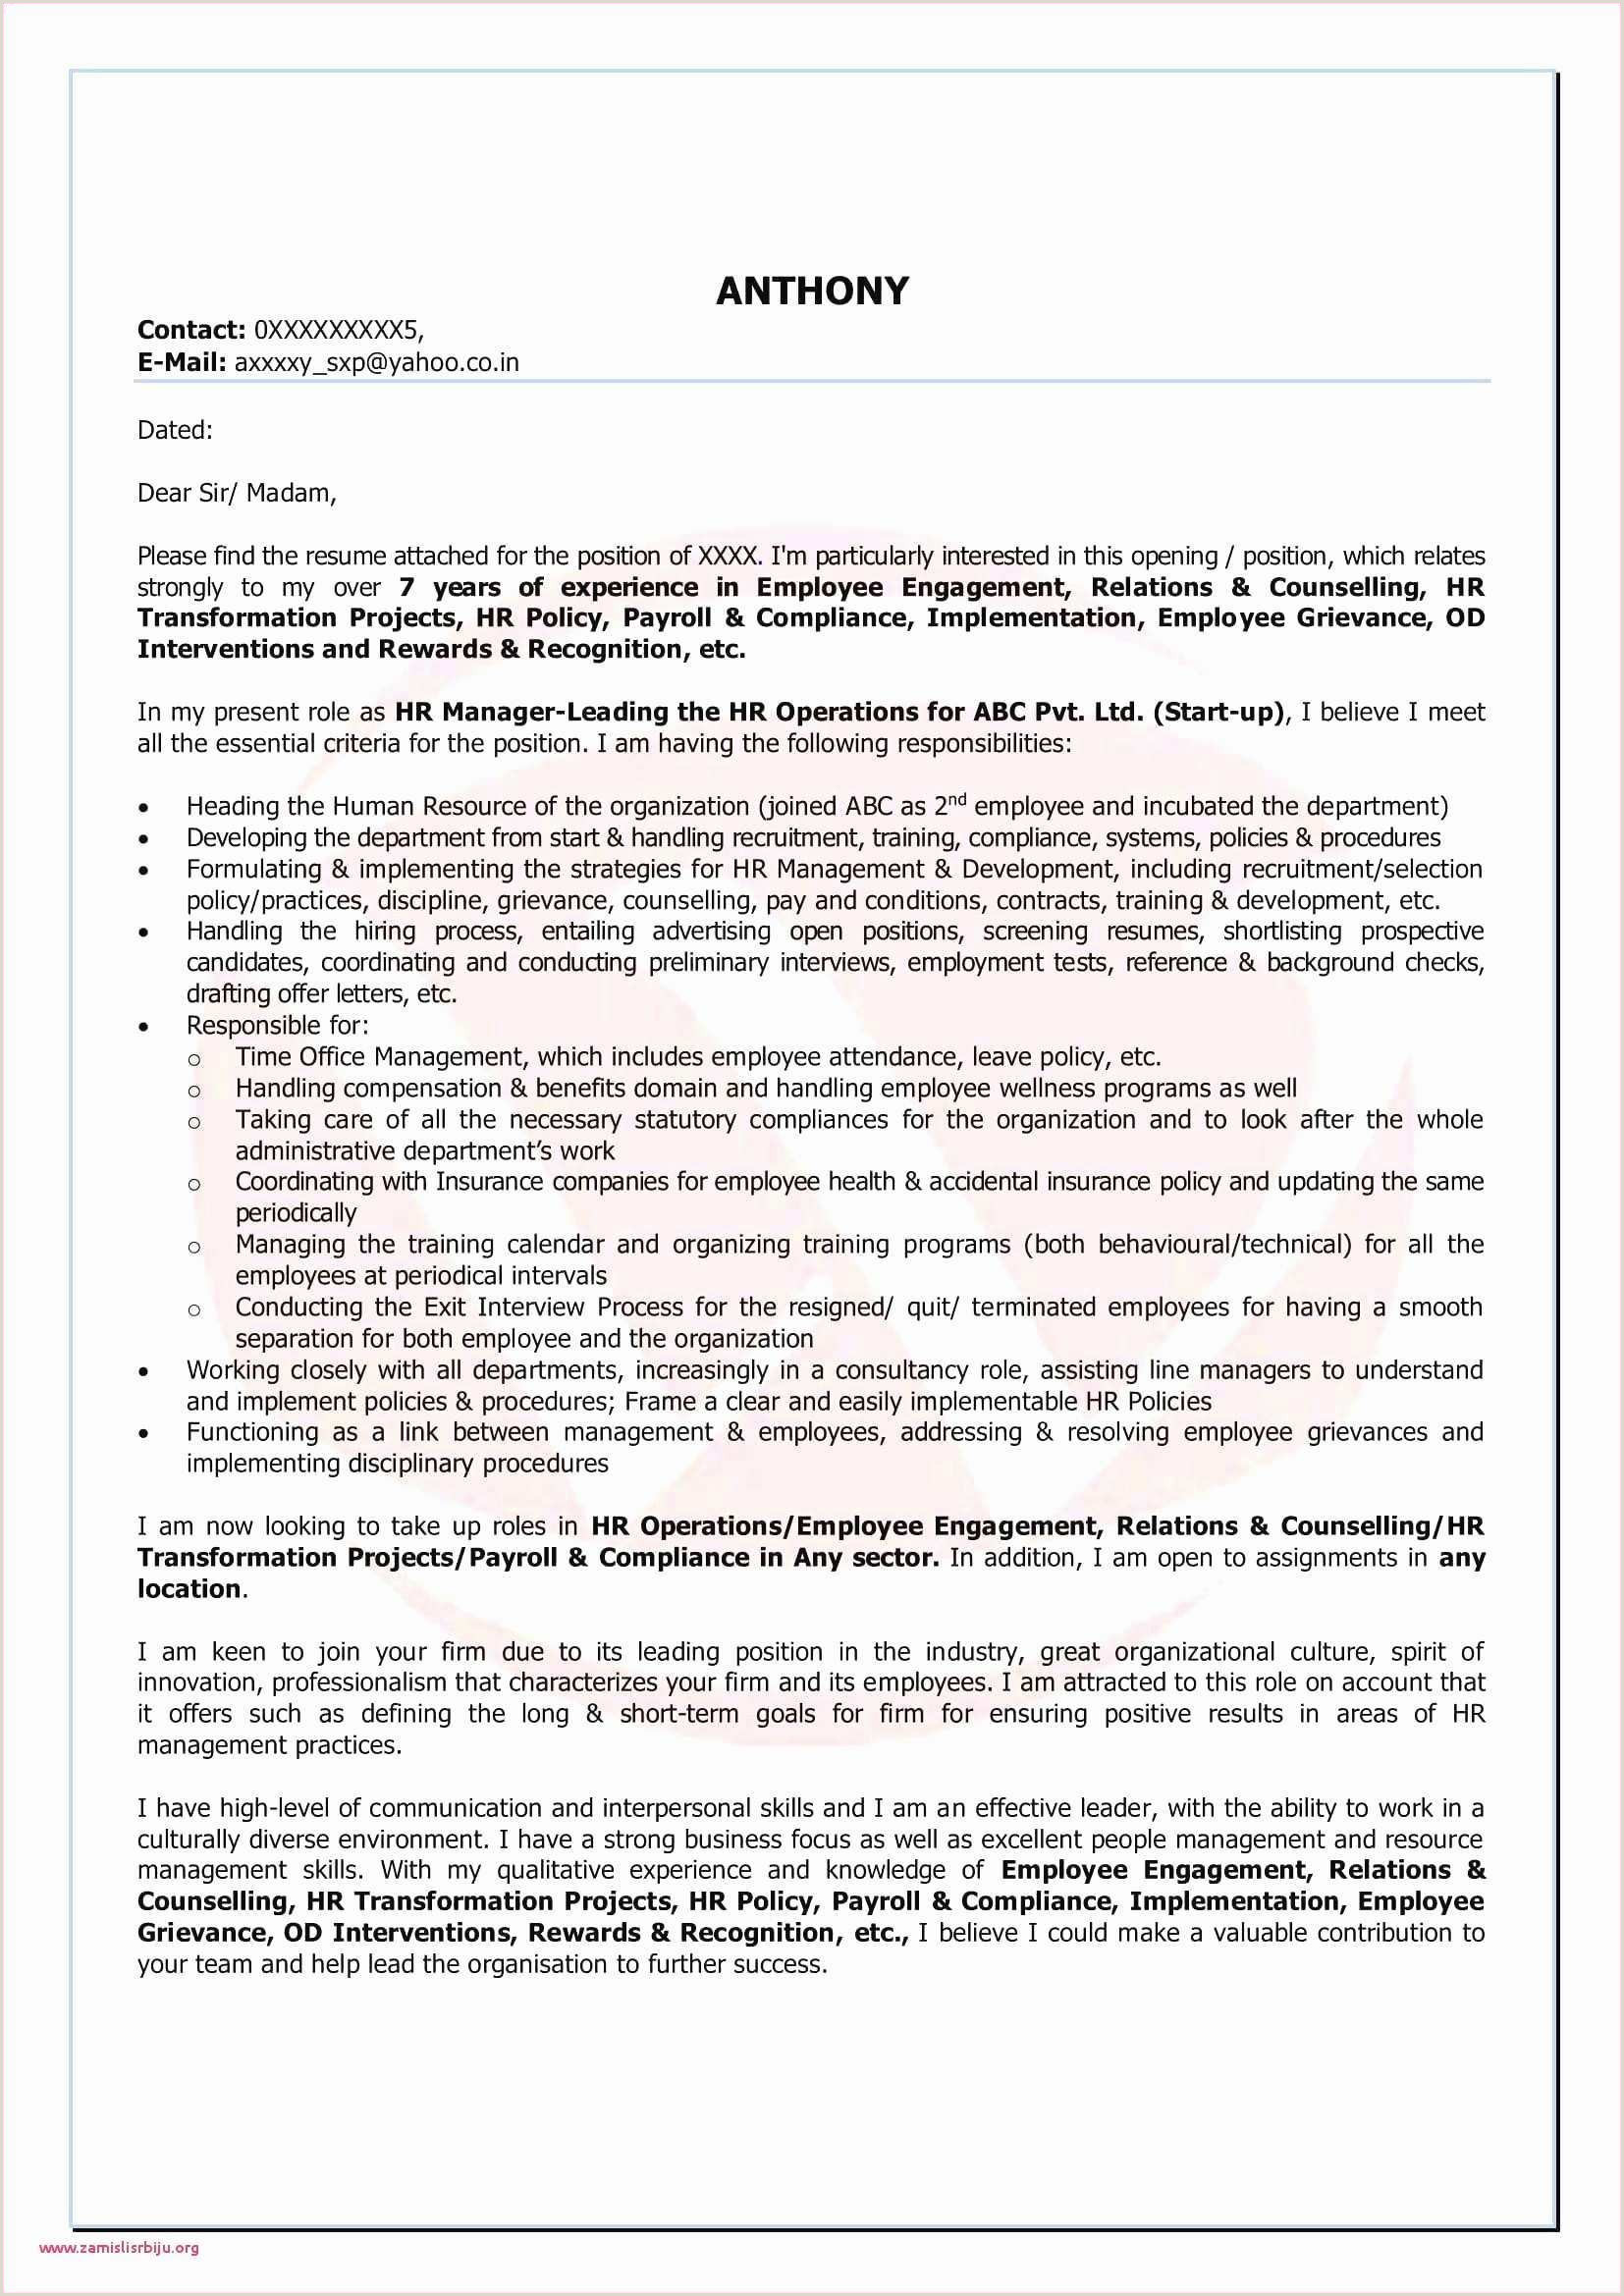 Resume Format For Job Doc Download Free Resume Templates For College Students Free Resume